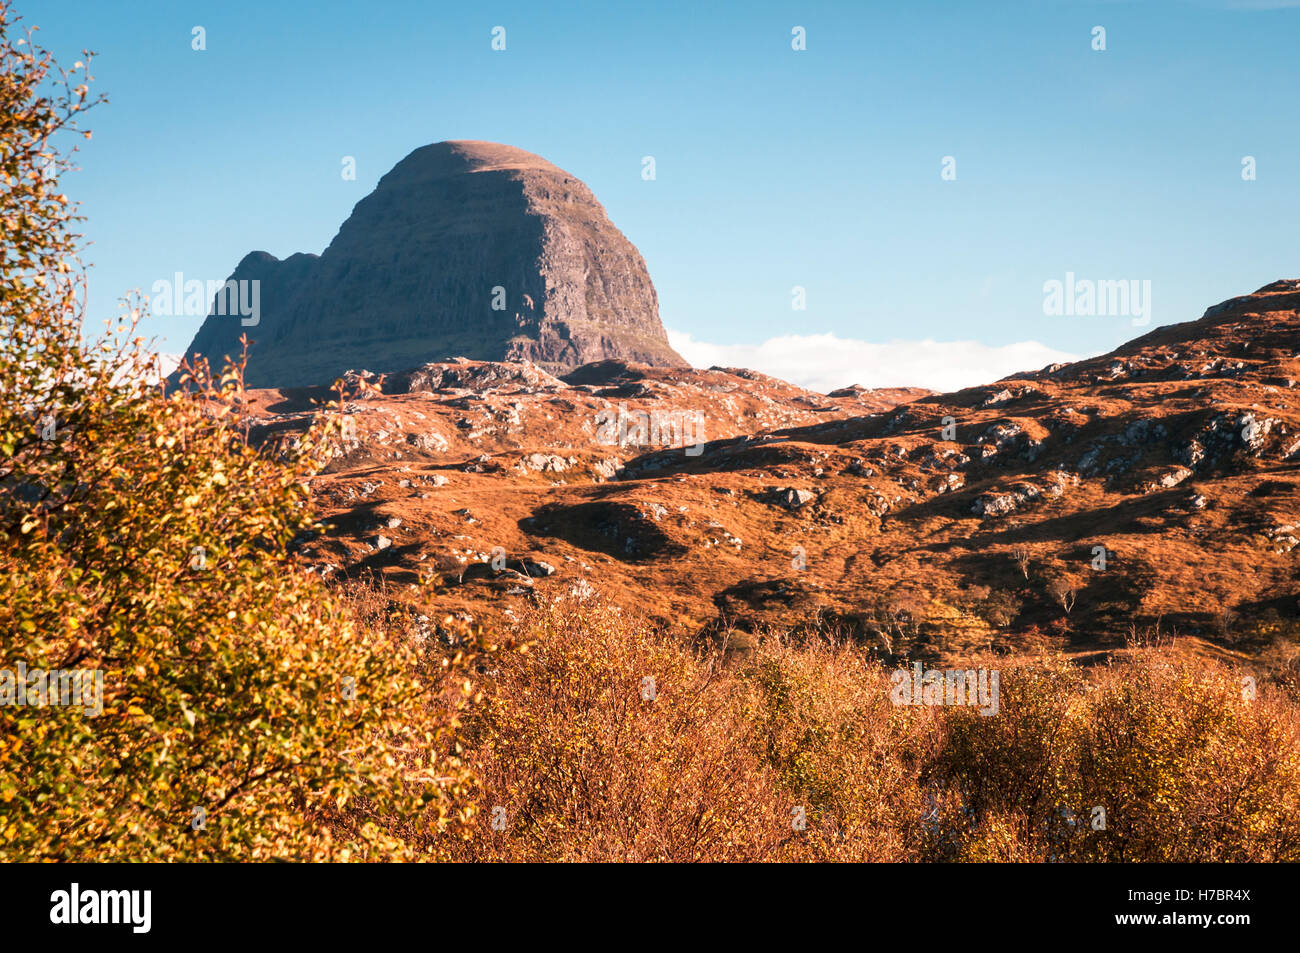 A landscape image looking across to Suilven, a mountain in Assynt, in the Scottish highlands. Stock Photo